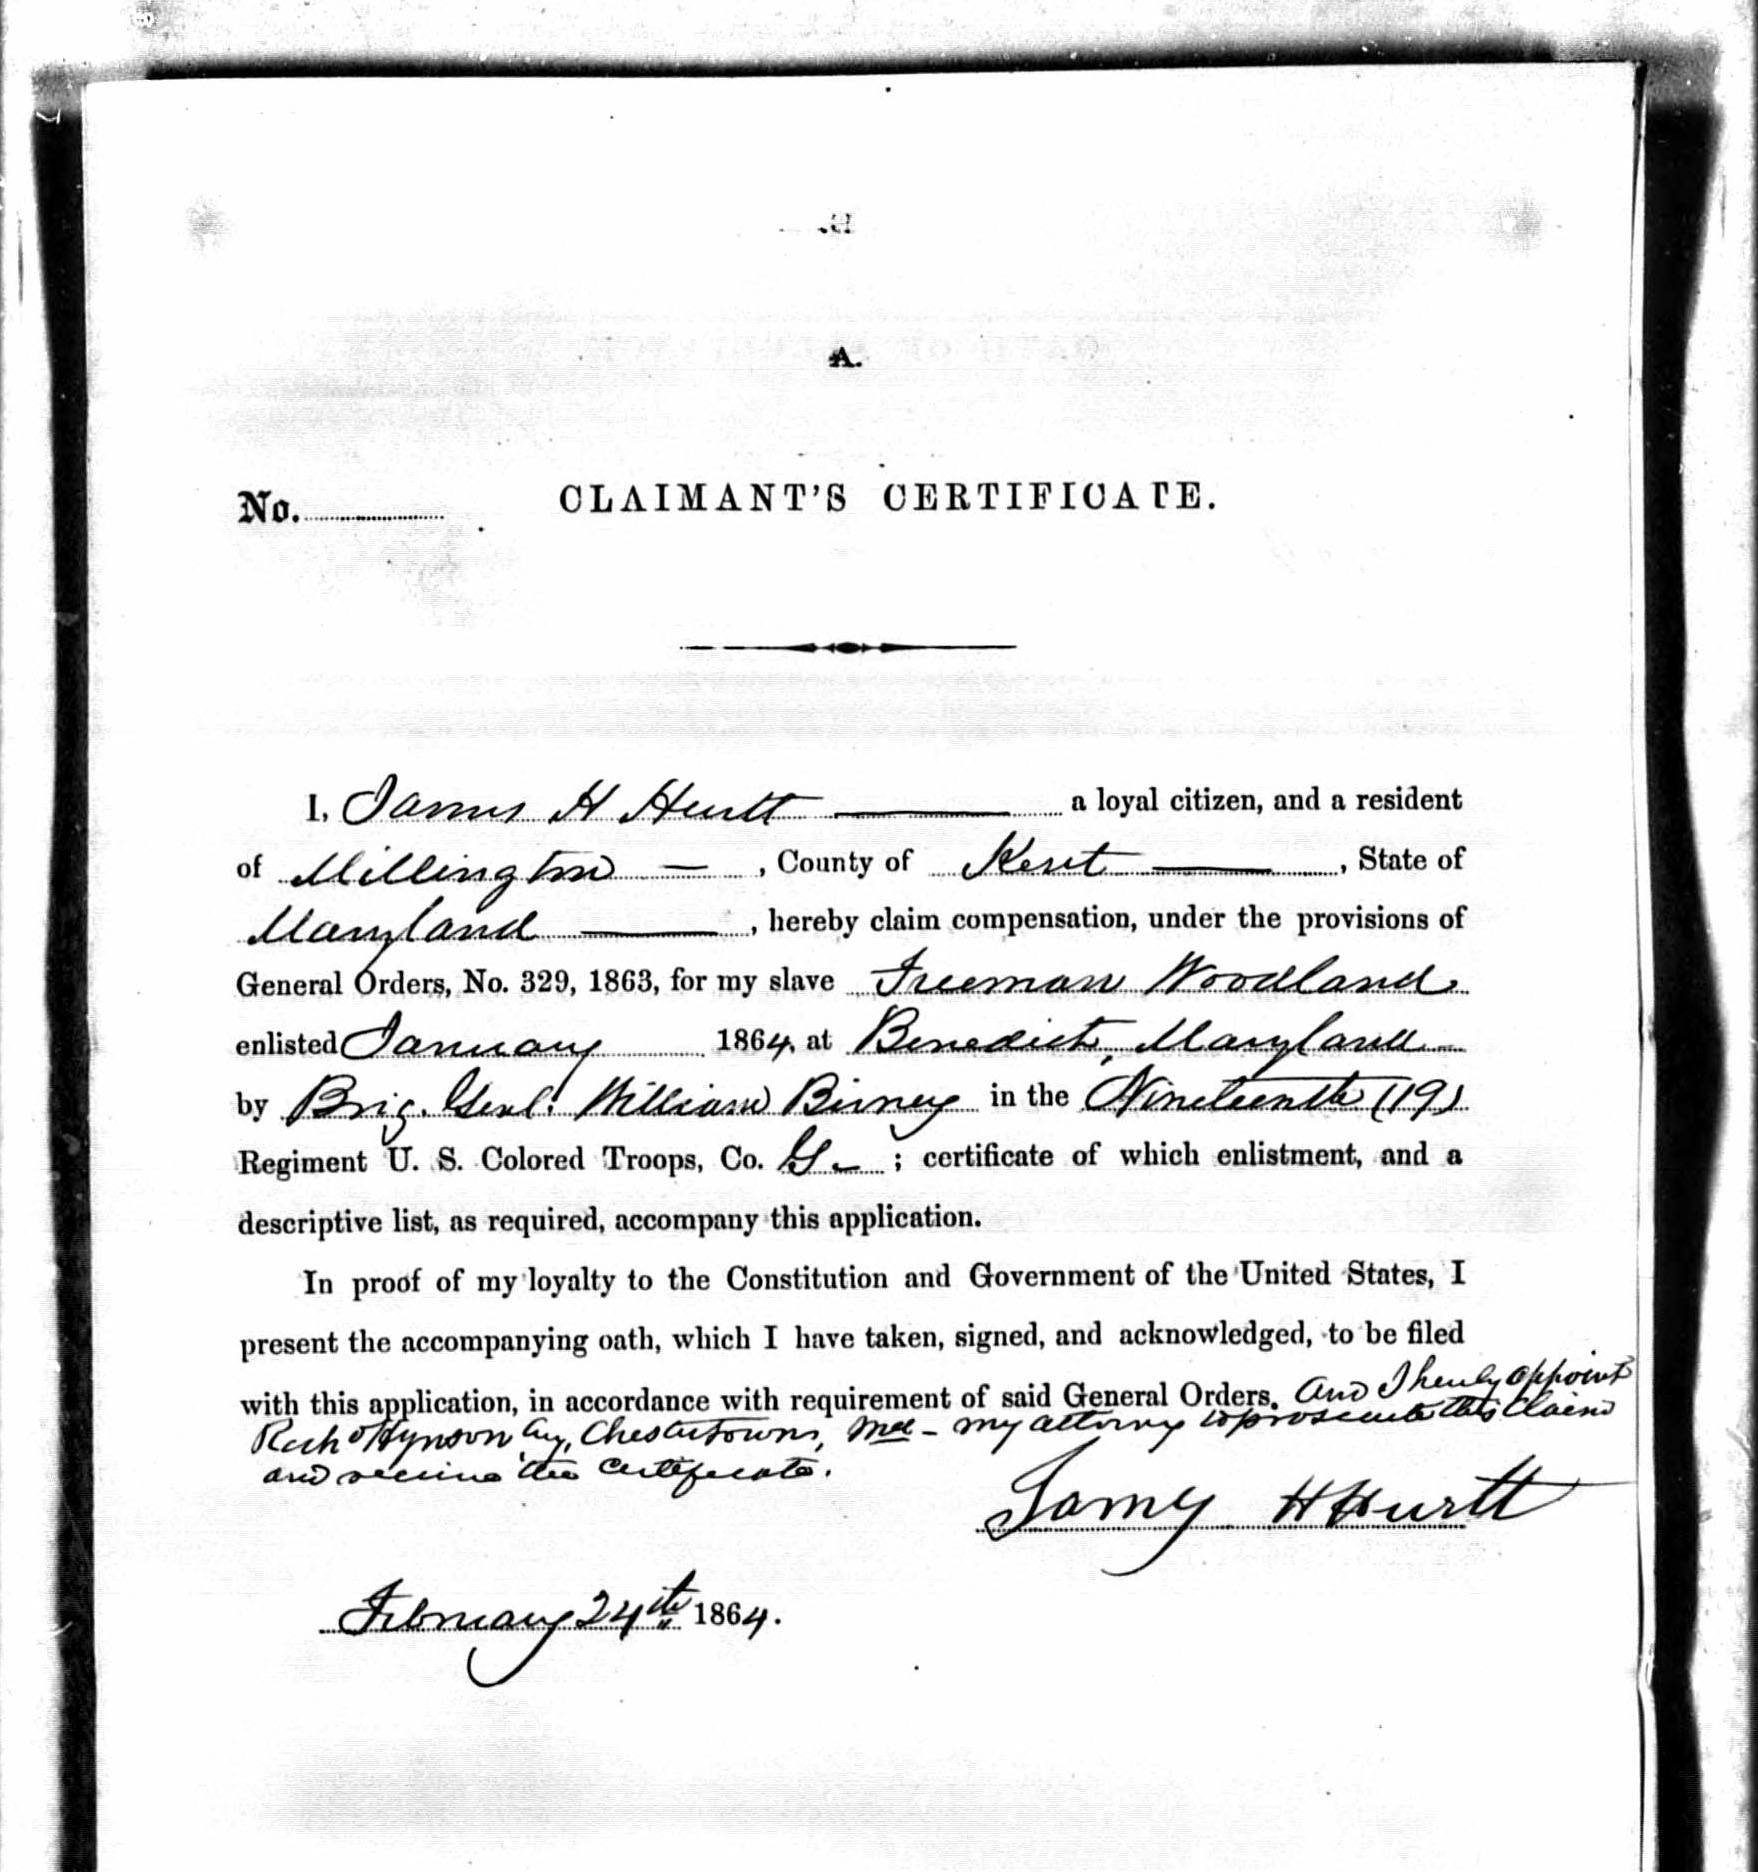 Freeman woodland msa sc 3520 7908 us colored troops military service records 1861 1865 company g 19th regiment freeman woodland claim certificate image number 672 1betcityfo Choice Image